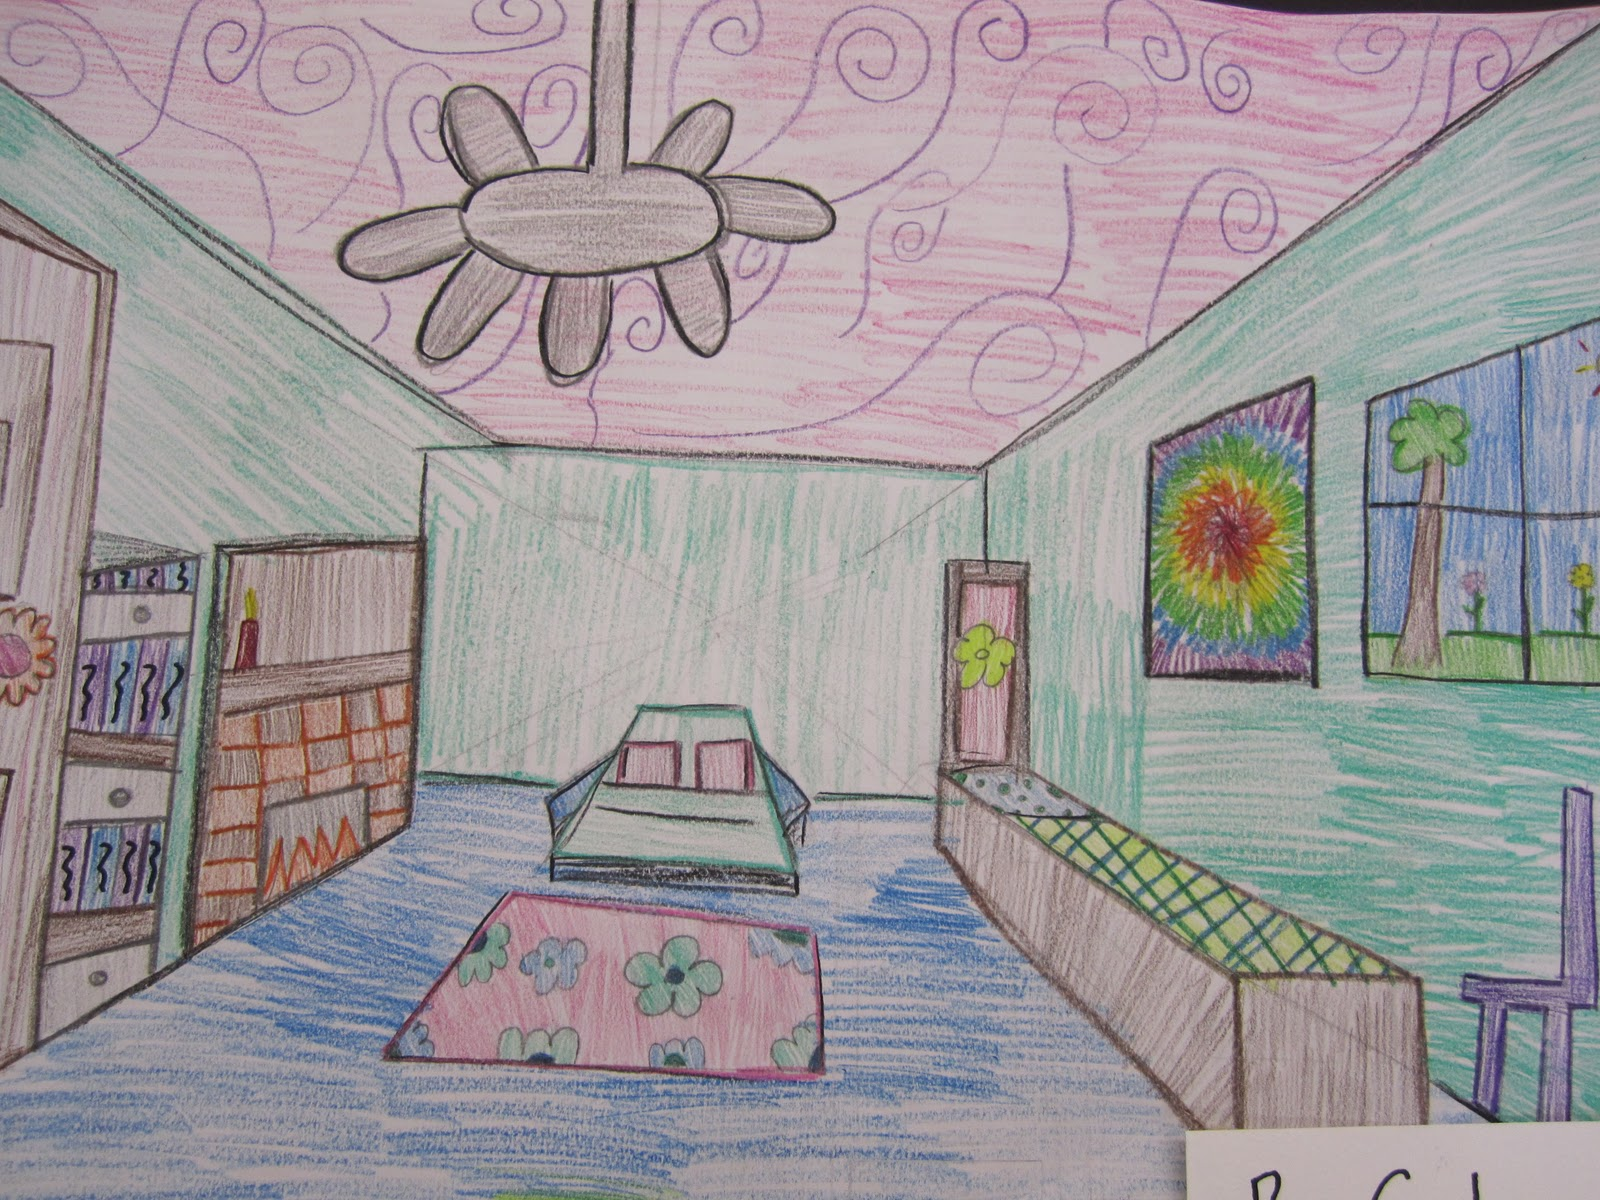 Finished dream rooms 7th grade thinkcreateart for Dream room creator